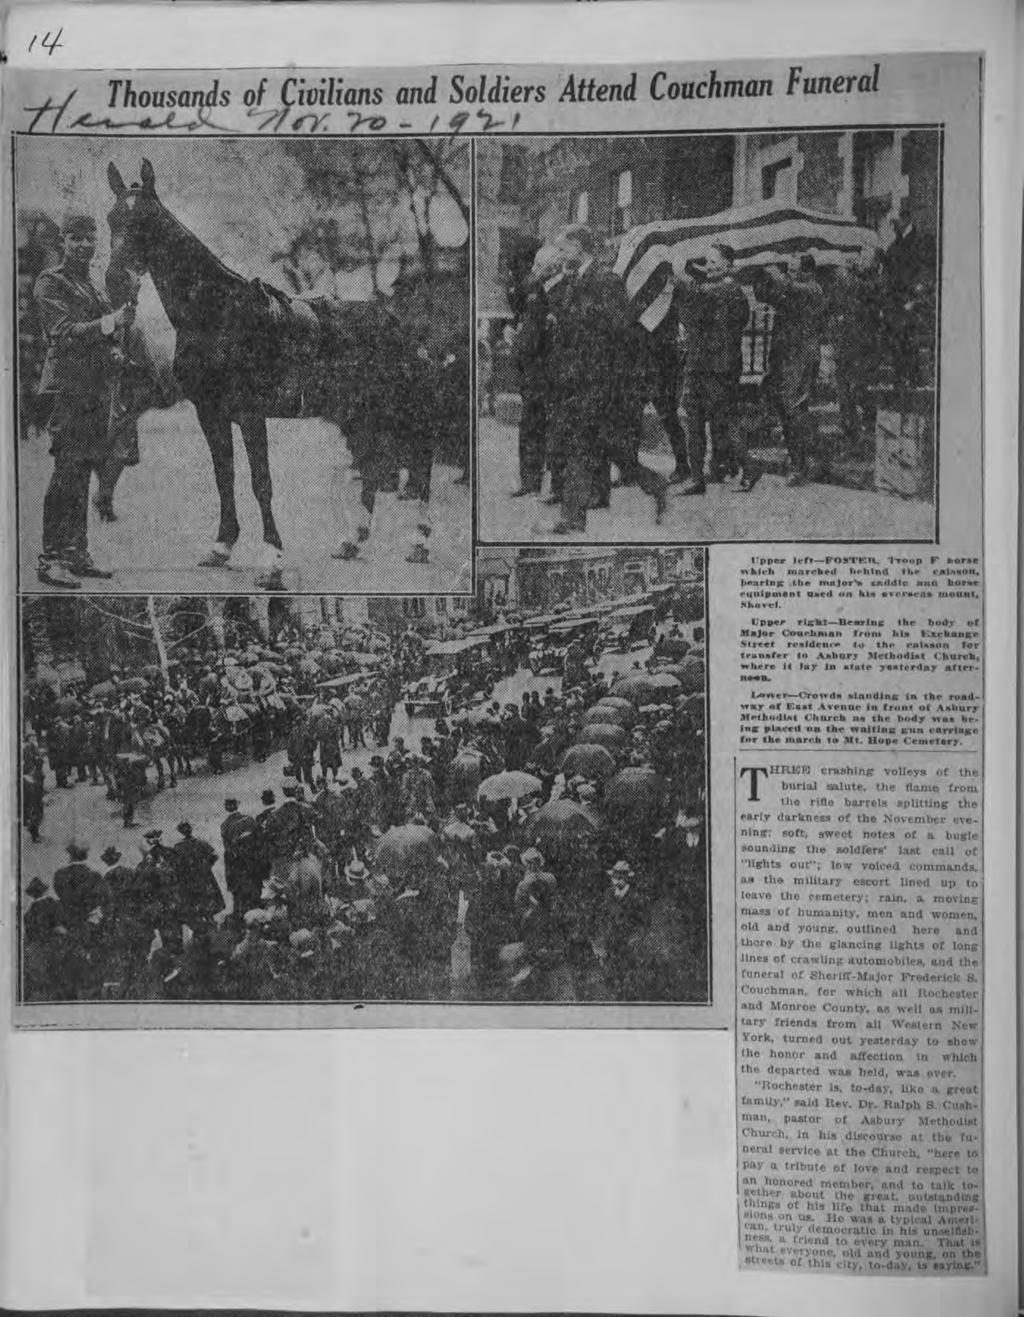 t Central Lbrary of Rochester and Monroe County Hstorc Scrapbooks Collecton Thousands of Cvlans and Solders Attend Couchman Funeral pper left FOSTKK, -roop F horse whch marchrl lhlnd the casson,